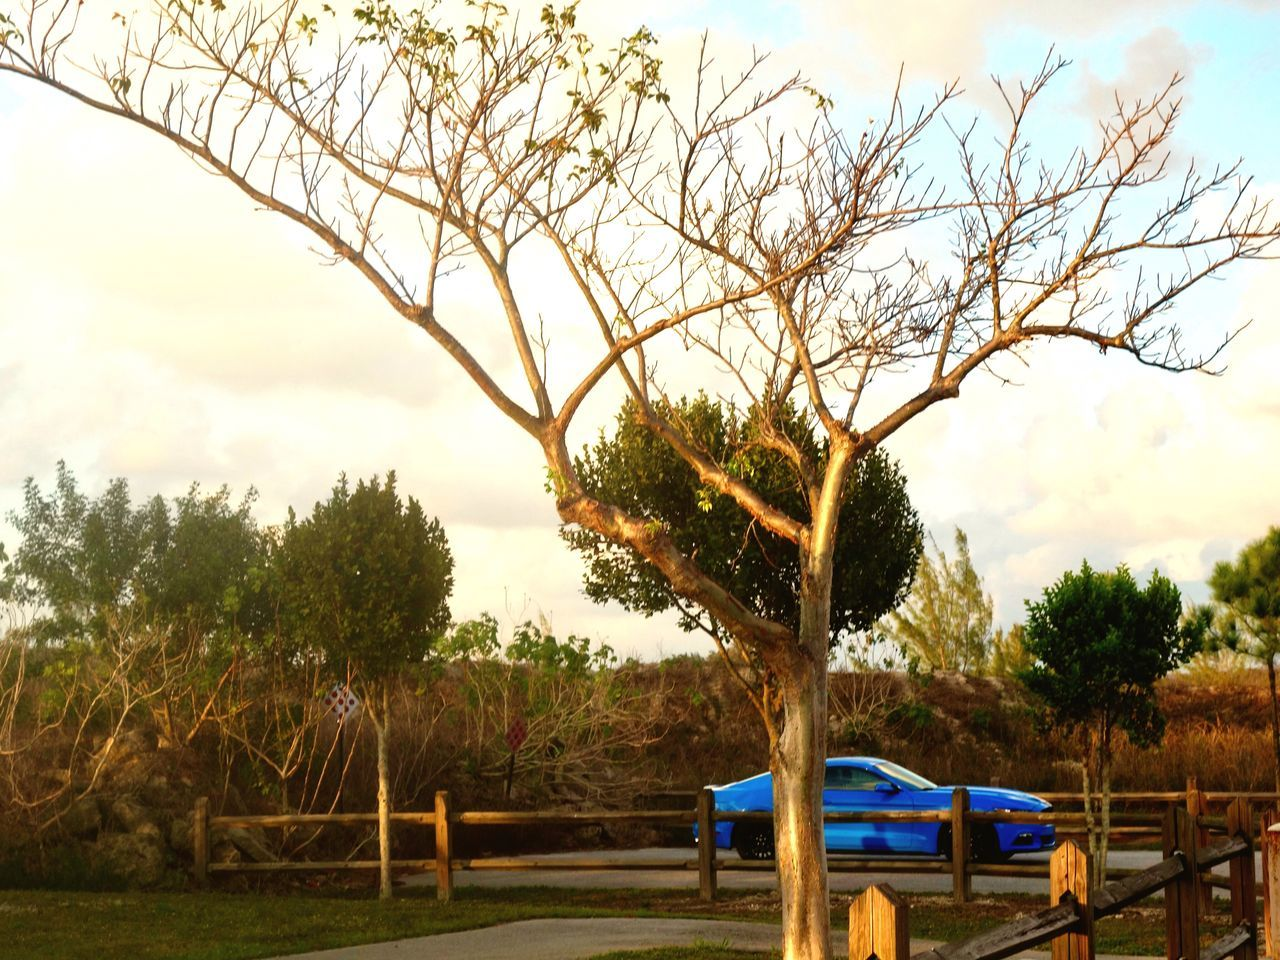 Tree Nature Sky Growth Beauty In Nature No People Outdoors Day Scenics Branch